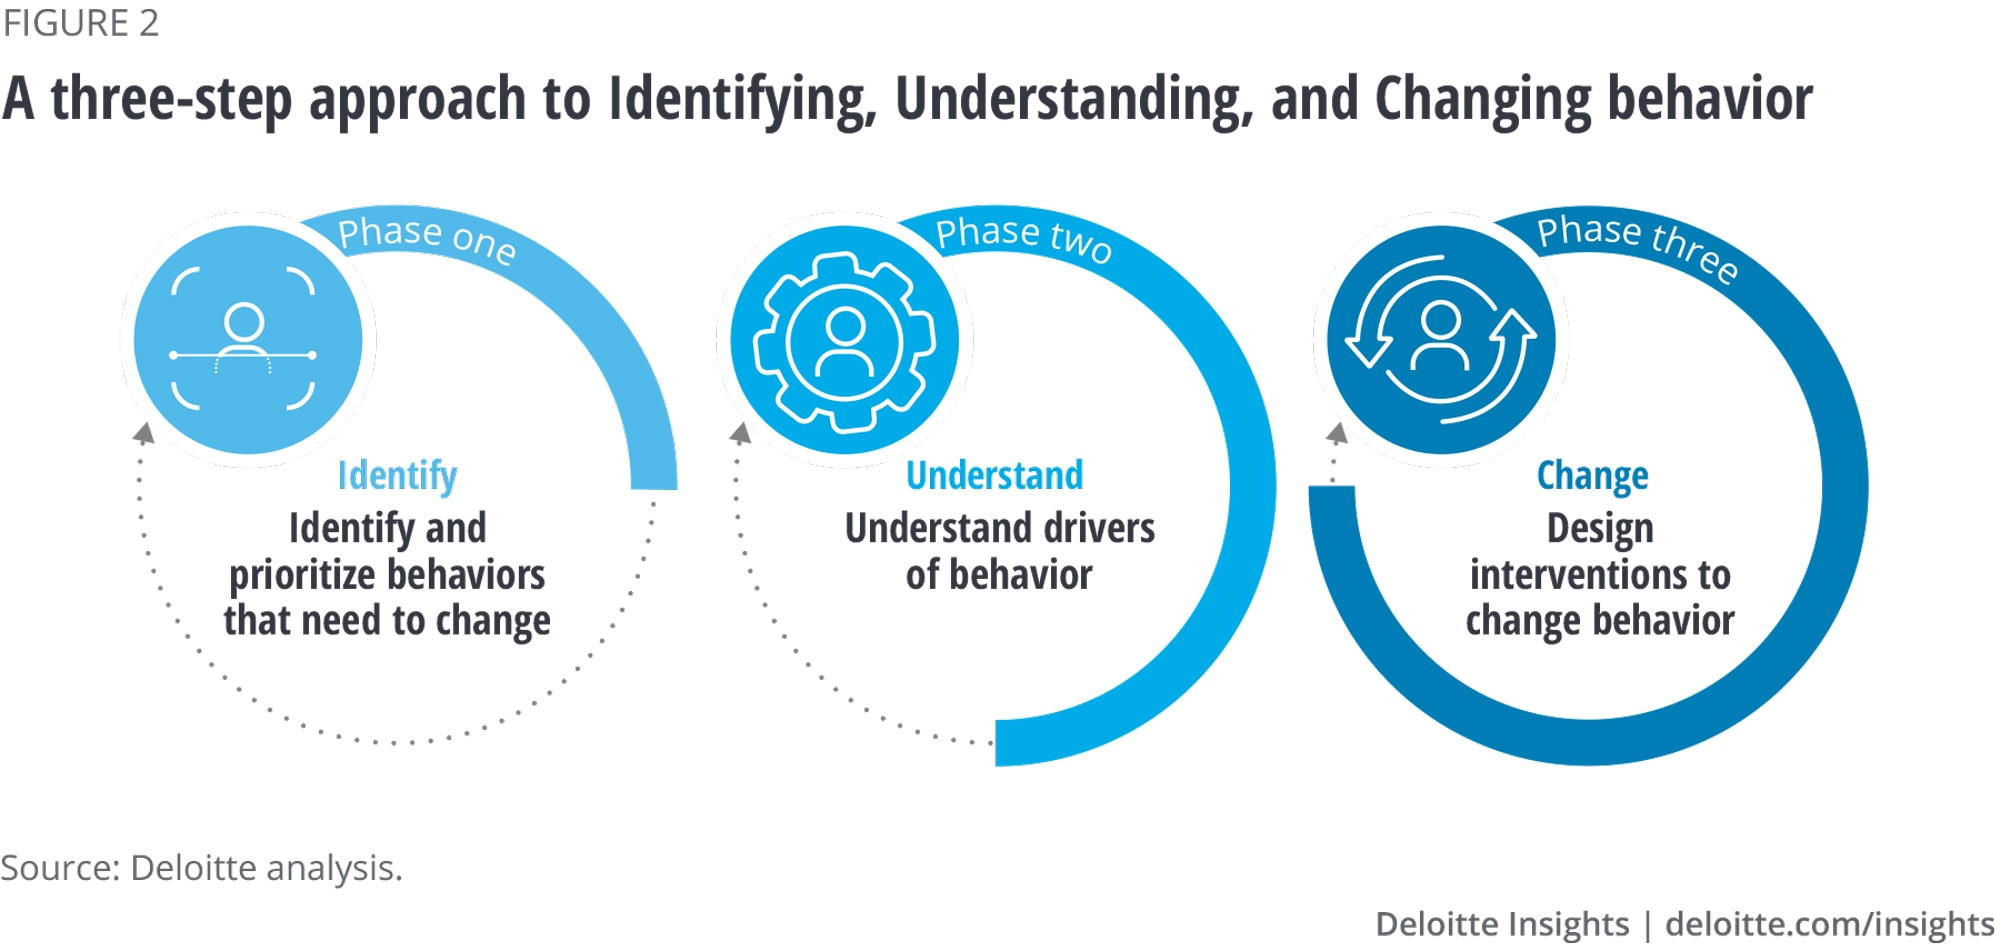 A three-step approach to identifying, understanding, and changing behavior